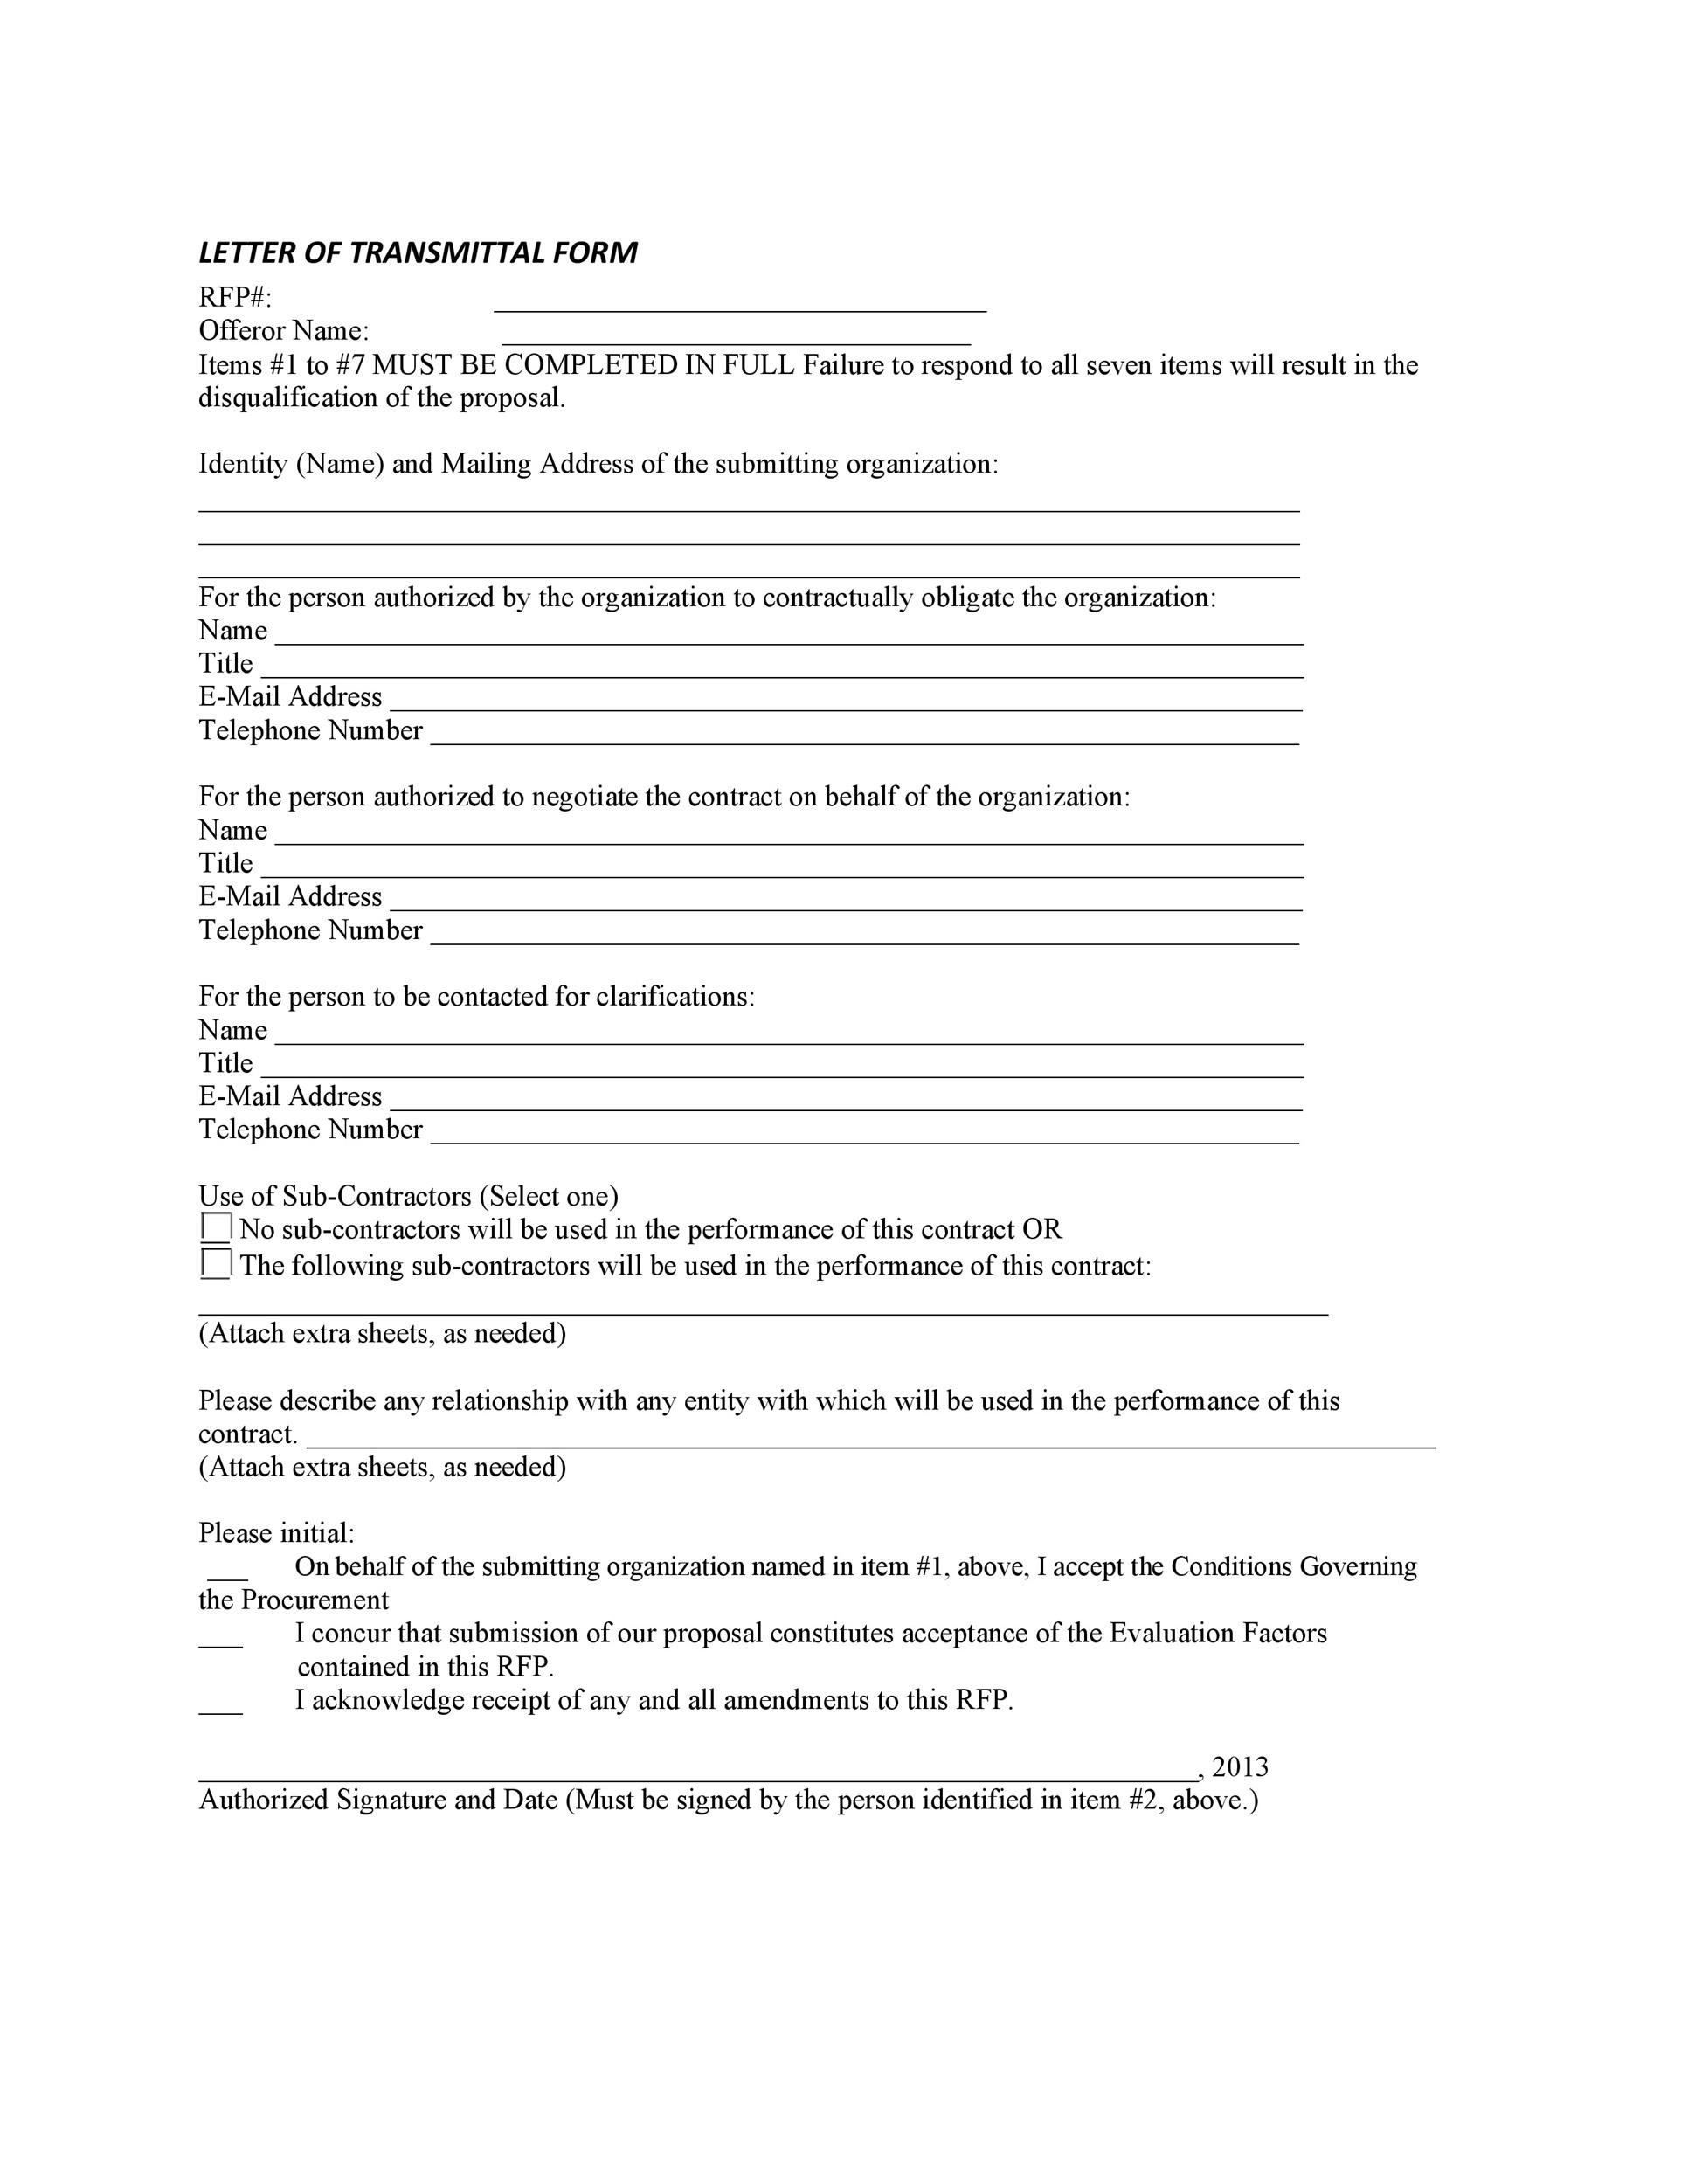 Printable Letter Of Transmittal Template 33  Letter Of Transmittal For Proposal